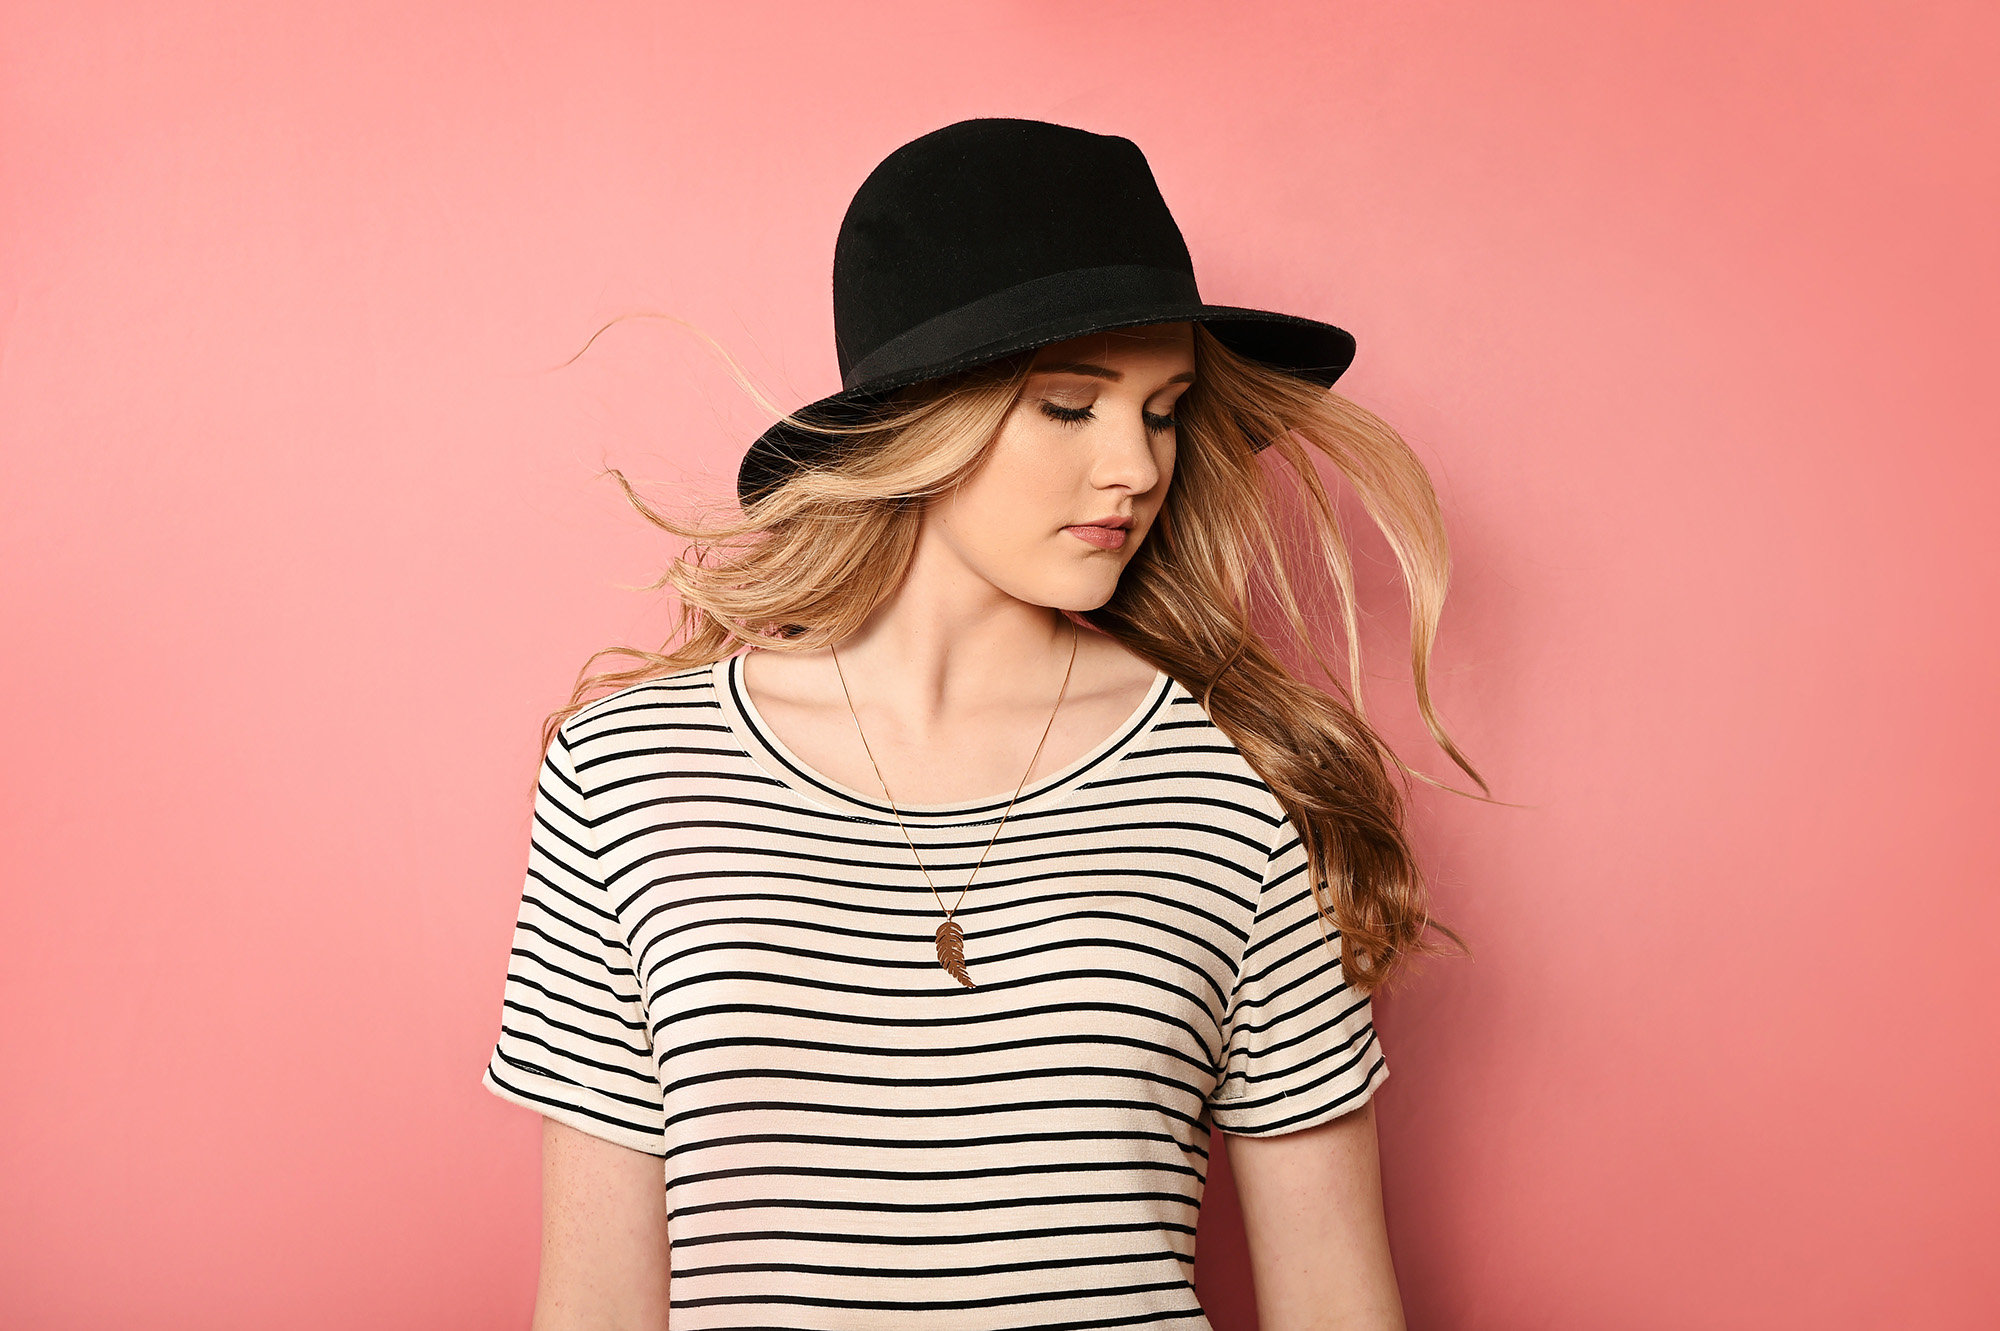 Amazing senior picture of blonde girl in black hat and striped shirt_1719.jpg